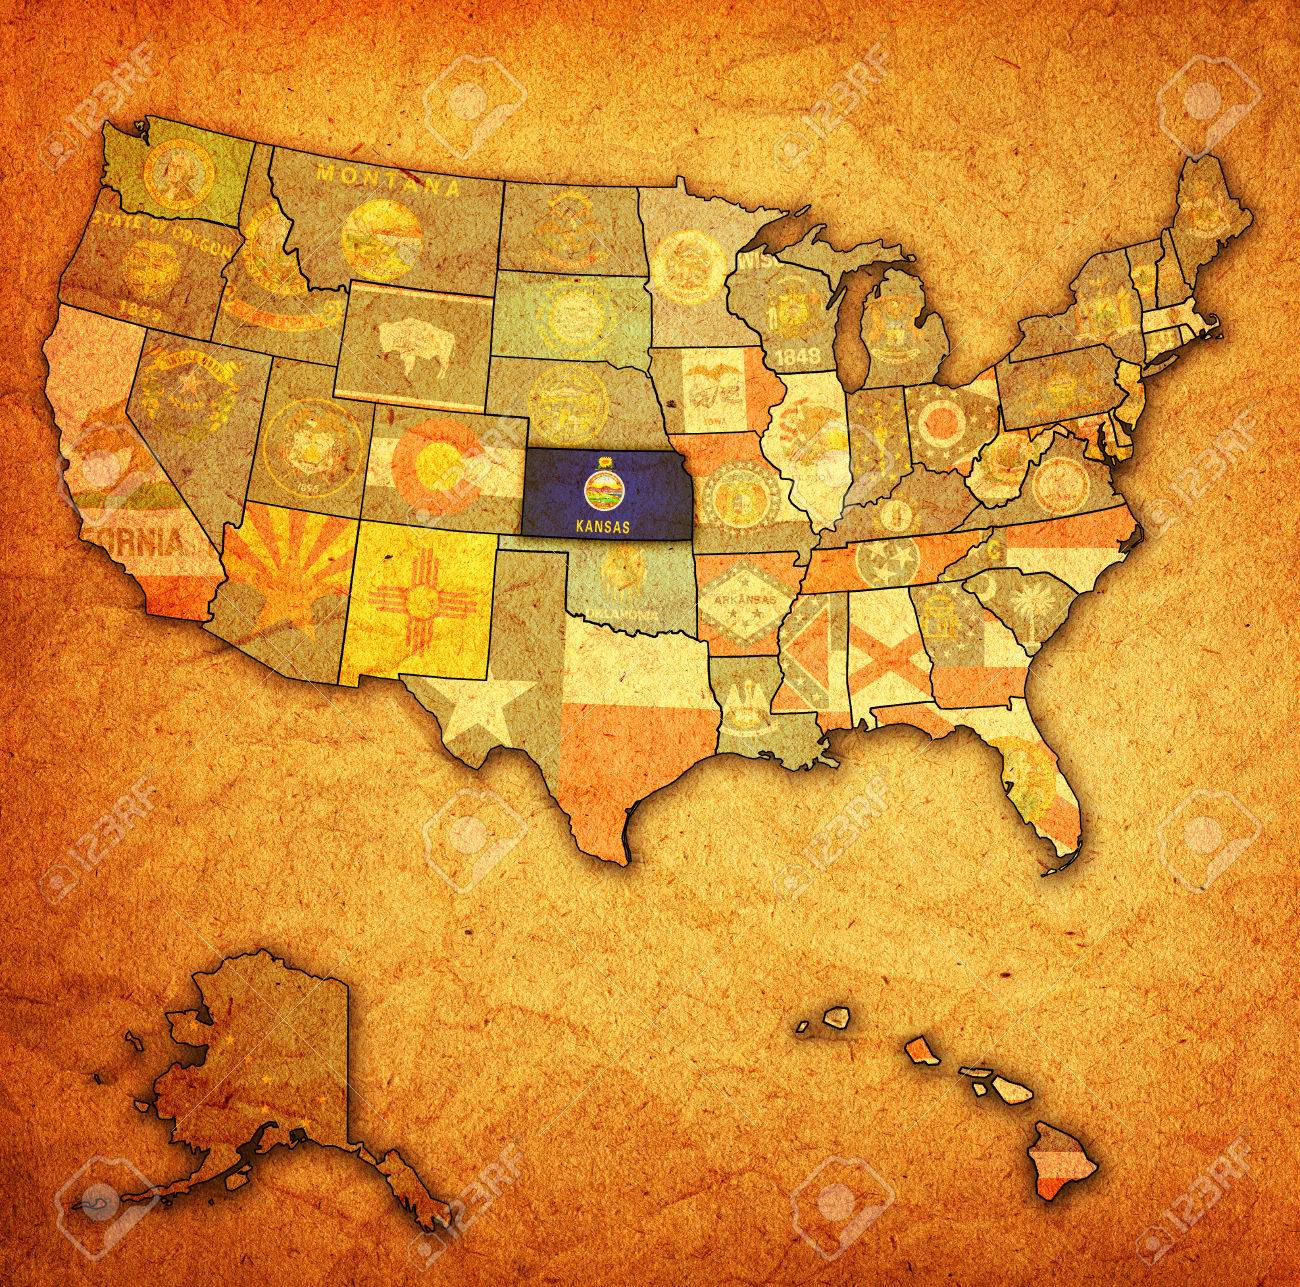 Kansas On Old Vintage Map Of Usa With State Borders Stock Photo 24015577